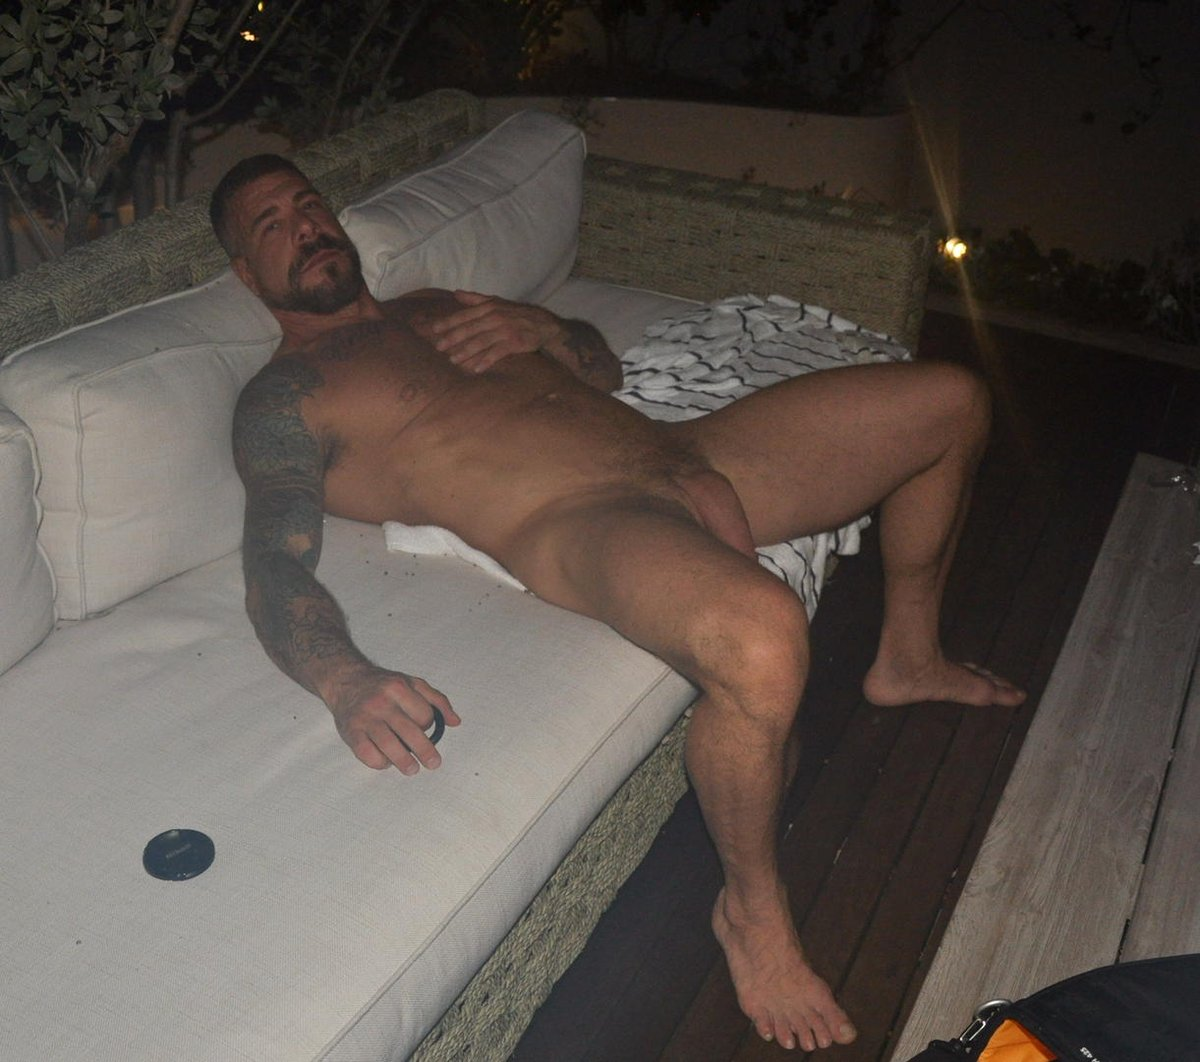 RT : An old pic I stumbled across...relaxing after some #nightswimming (and other things)